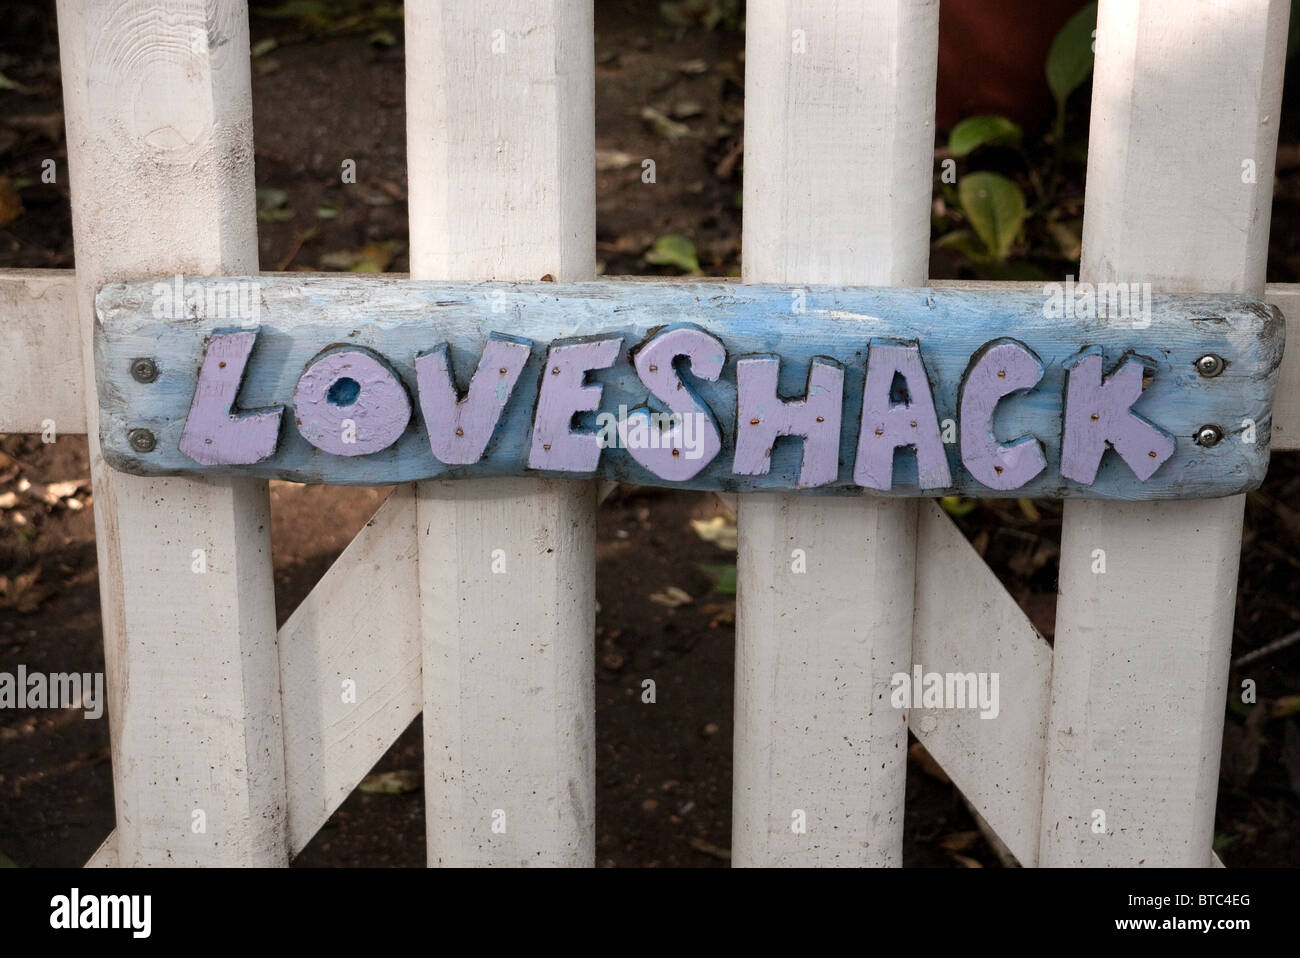 Loveshack dating quotes